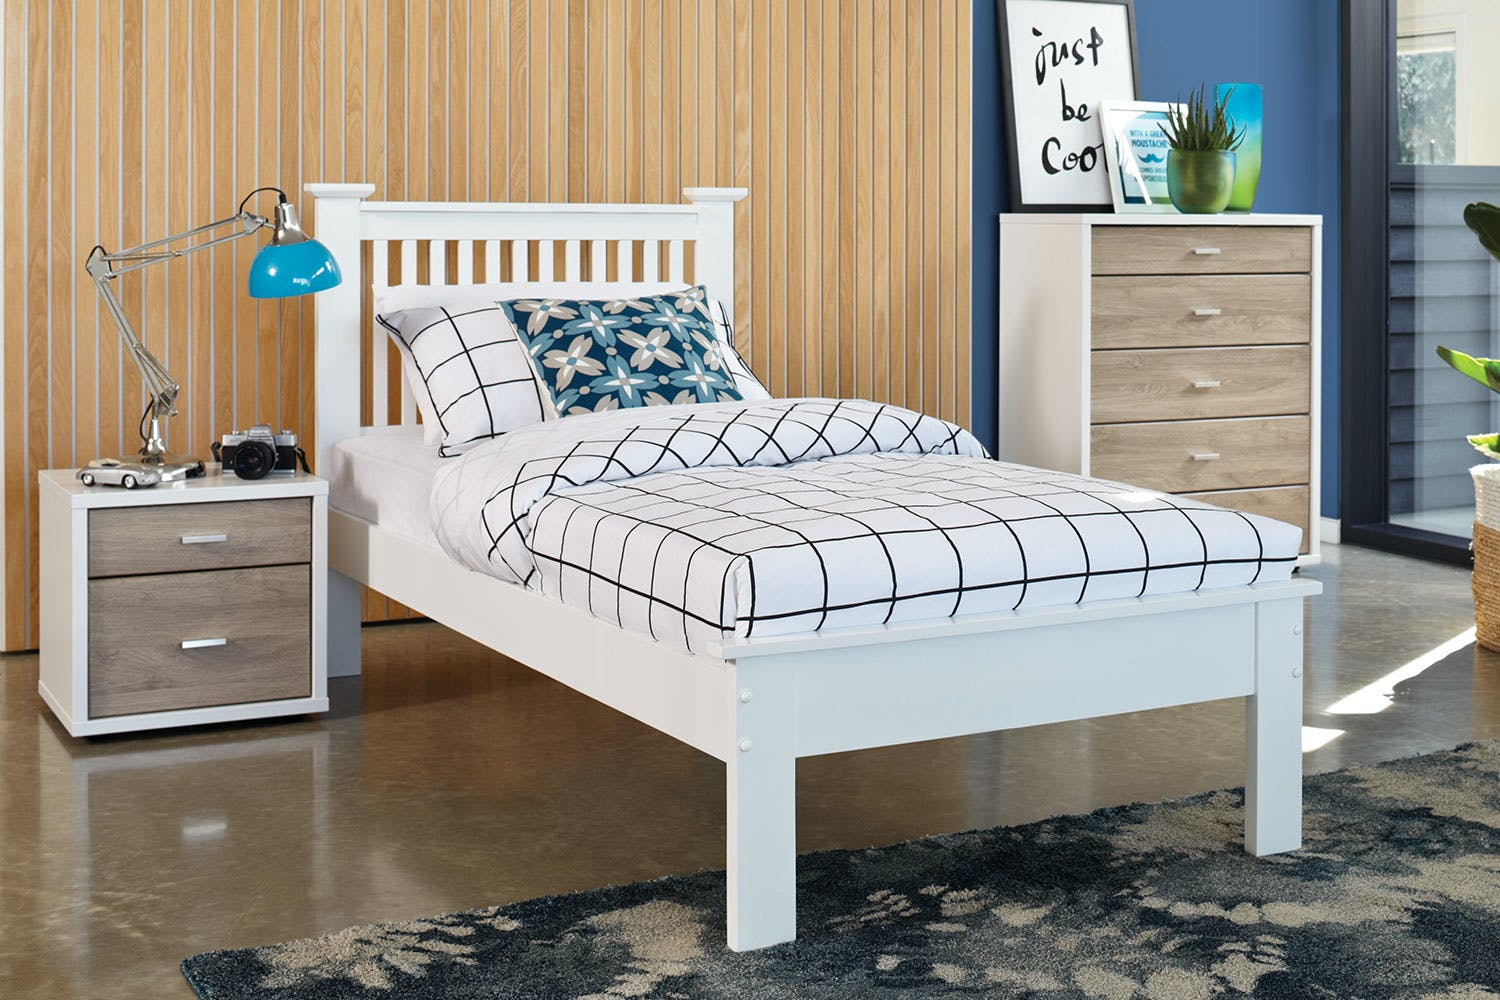 Single bed frame -  Aston King Single Bed Frame By Nero Furniture